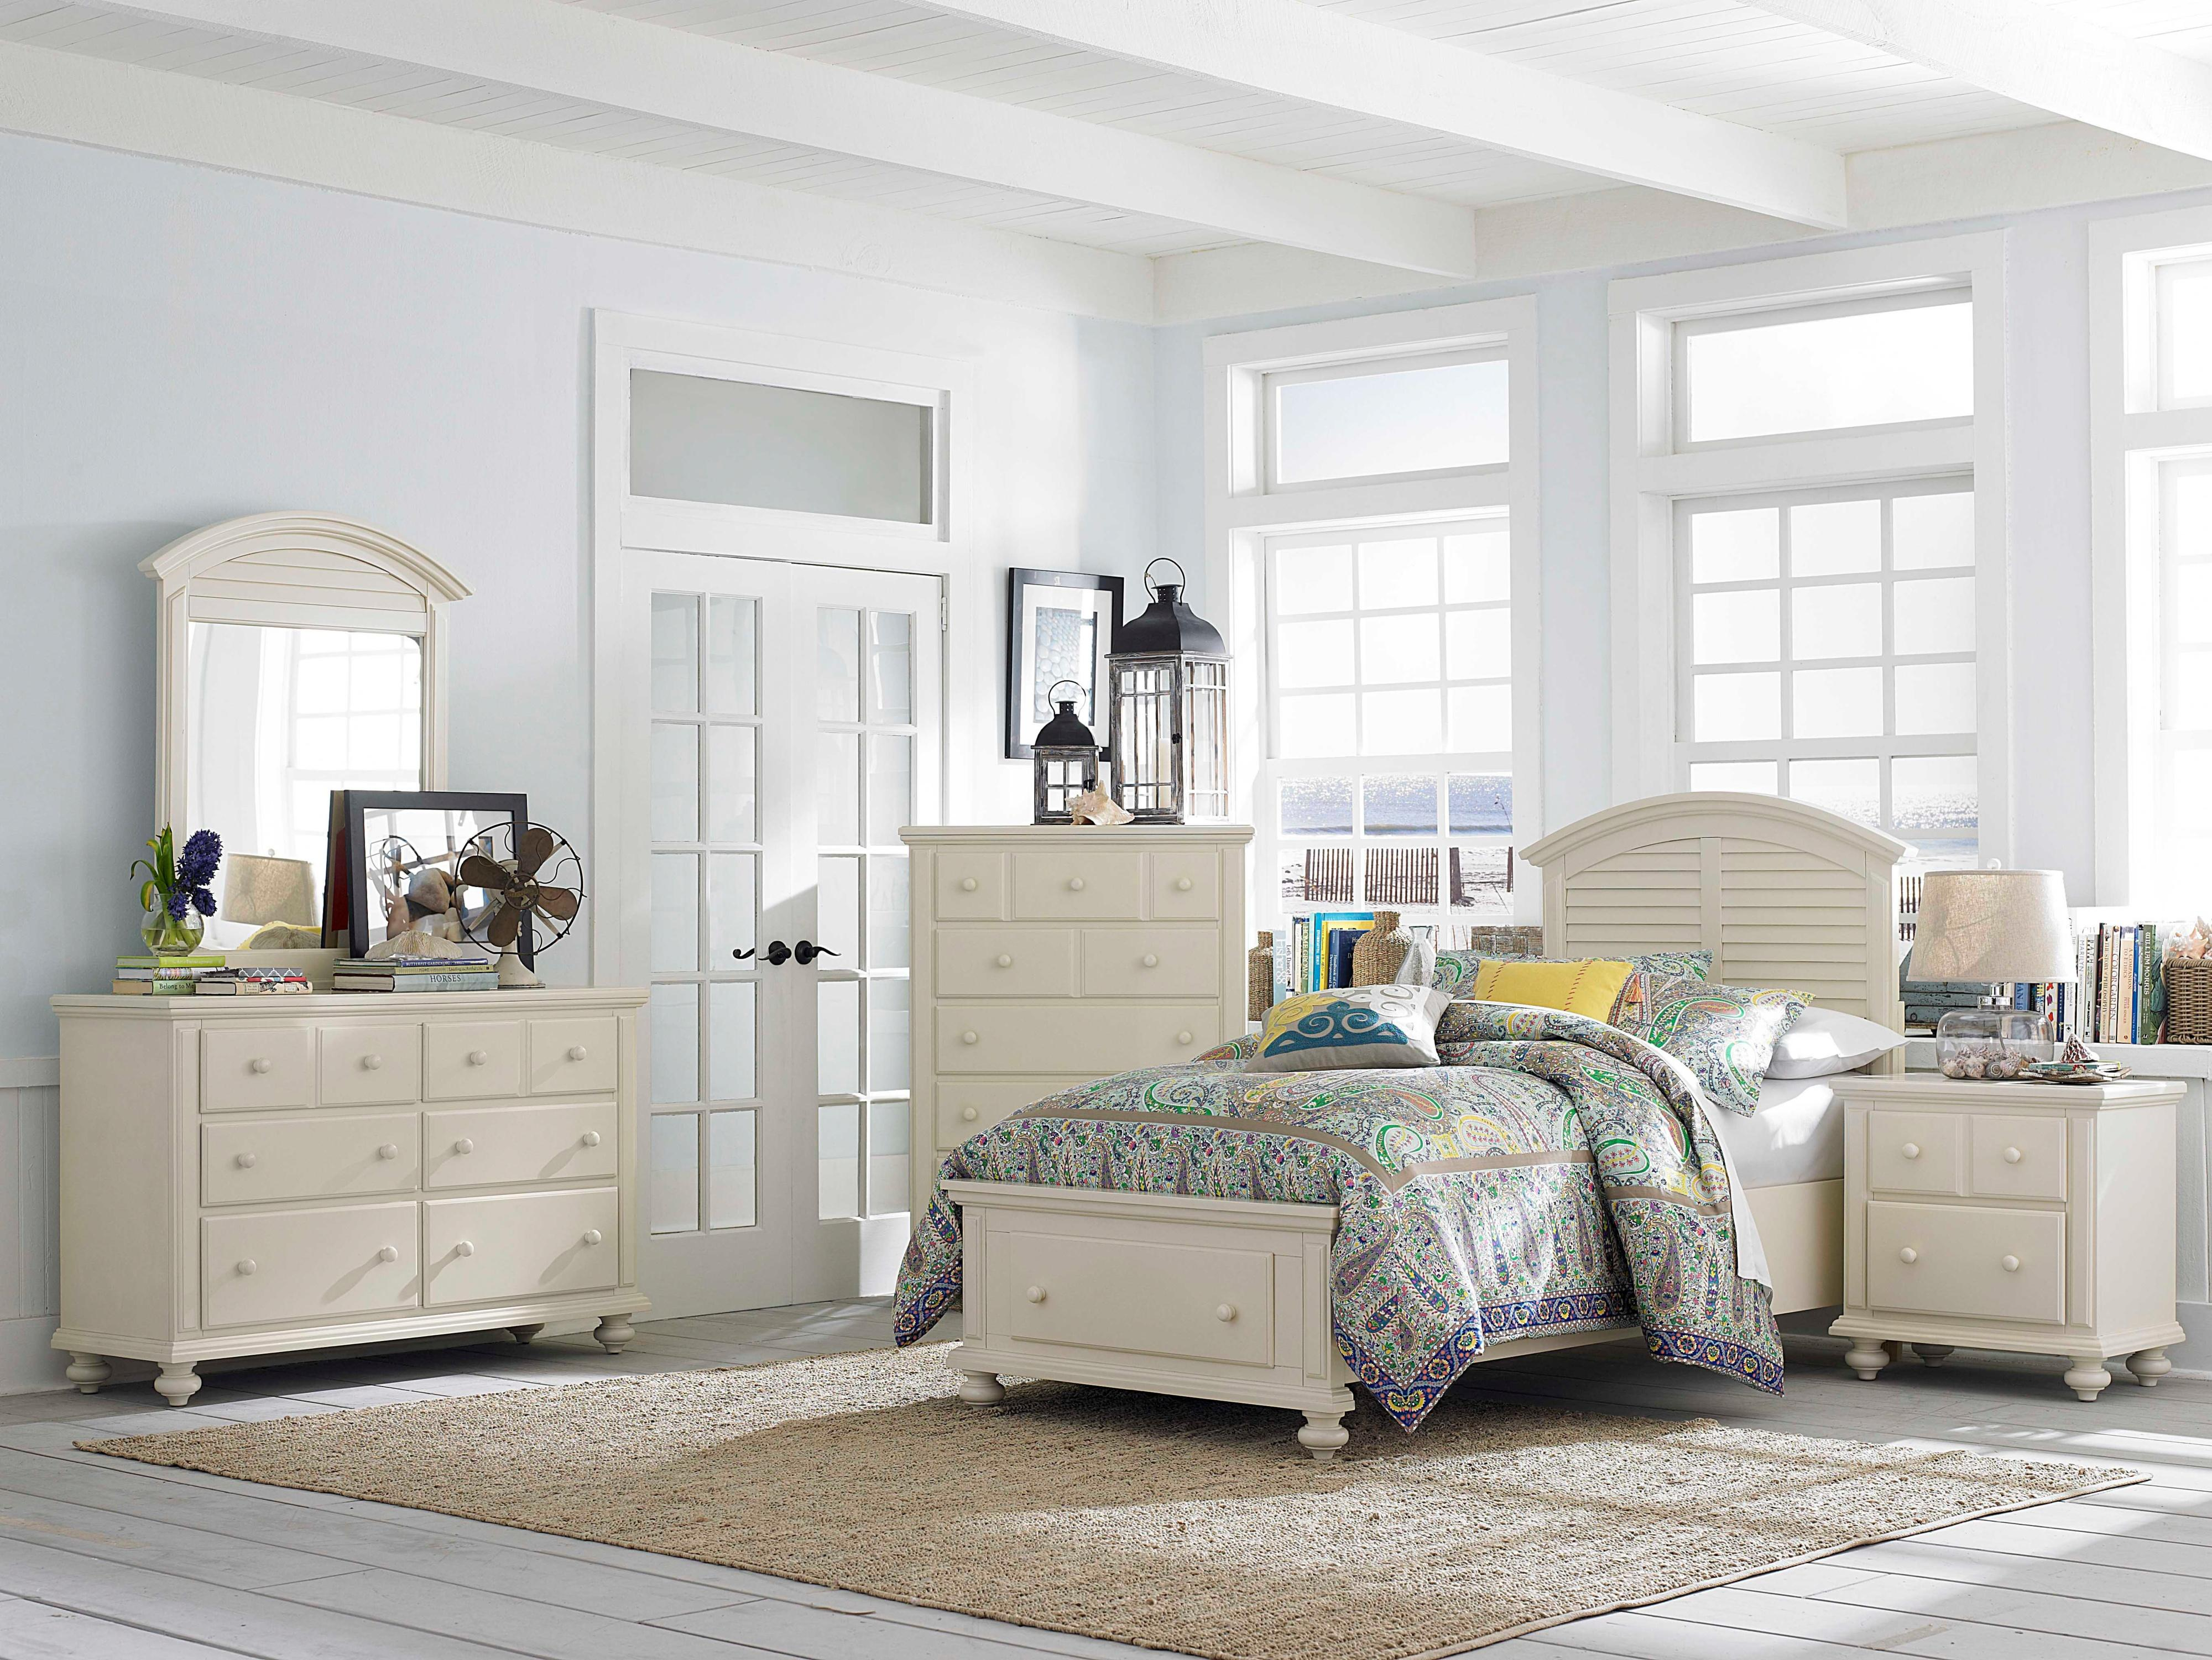 furniture girl bedroom furnishing heirloom with white interior small headboards is design sets set good quality broyhill